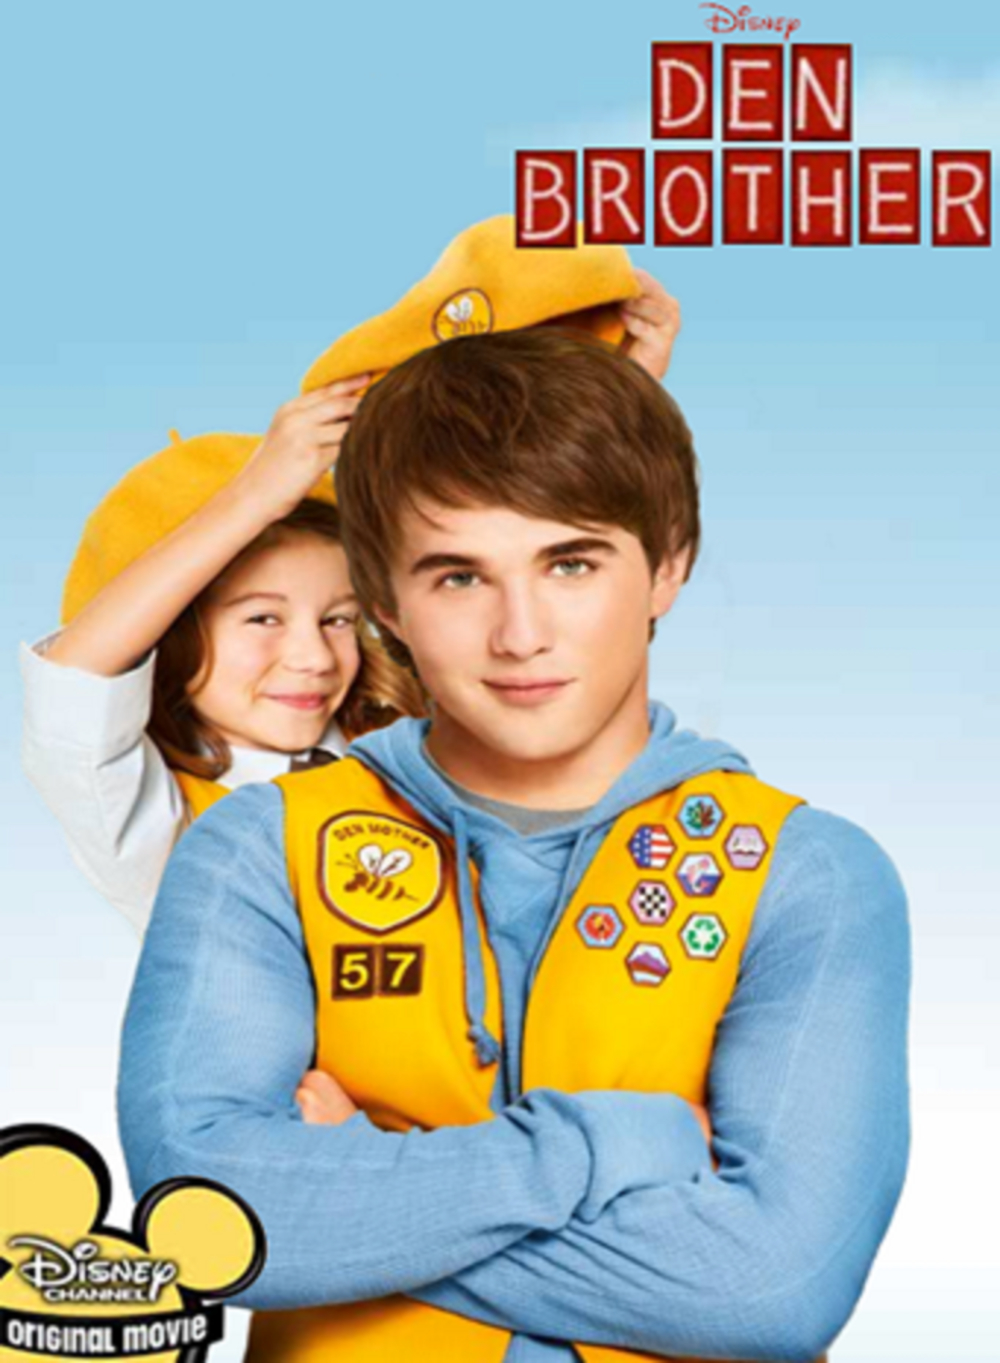 Den Brother (2010)